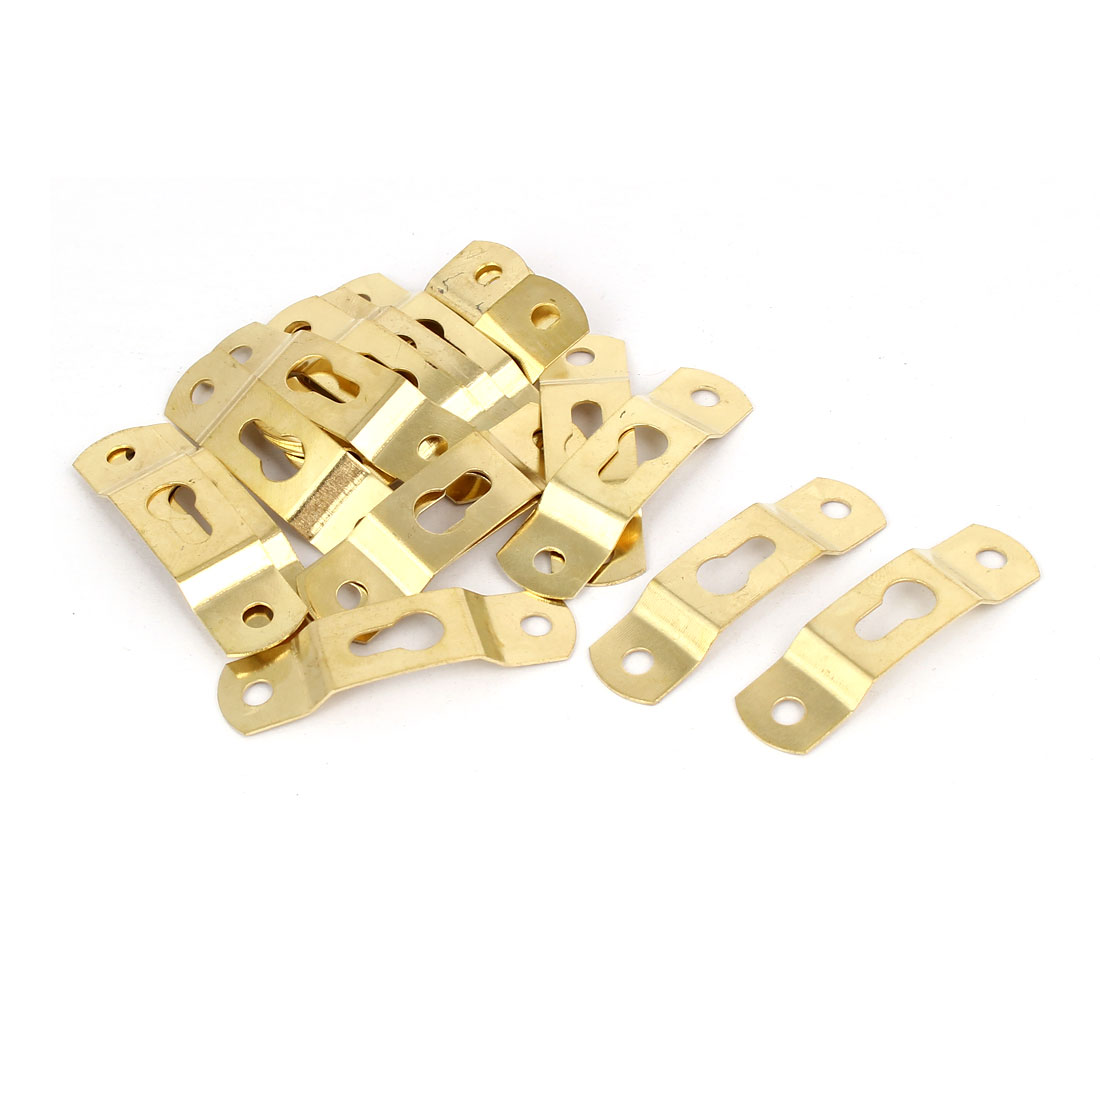 Picture Photo Frame Hanging Hidden Hook Hanger Gold Tone 49mmx13mmx5mm 20pcs